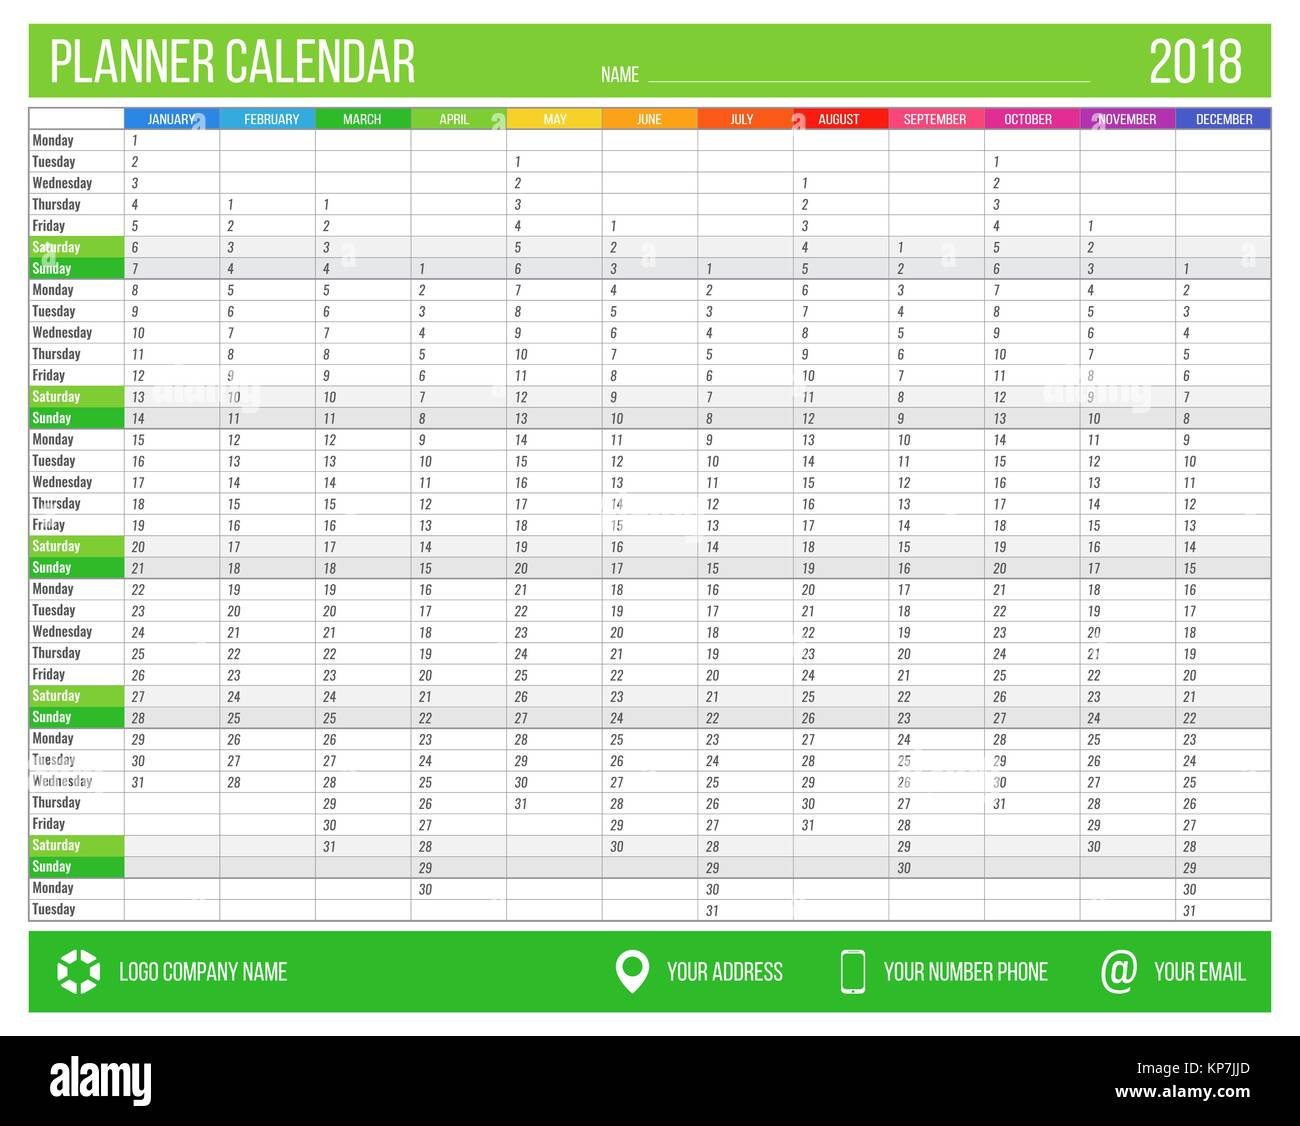 Calendar Planner C : Printable calendar stock photos